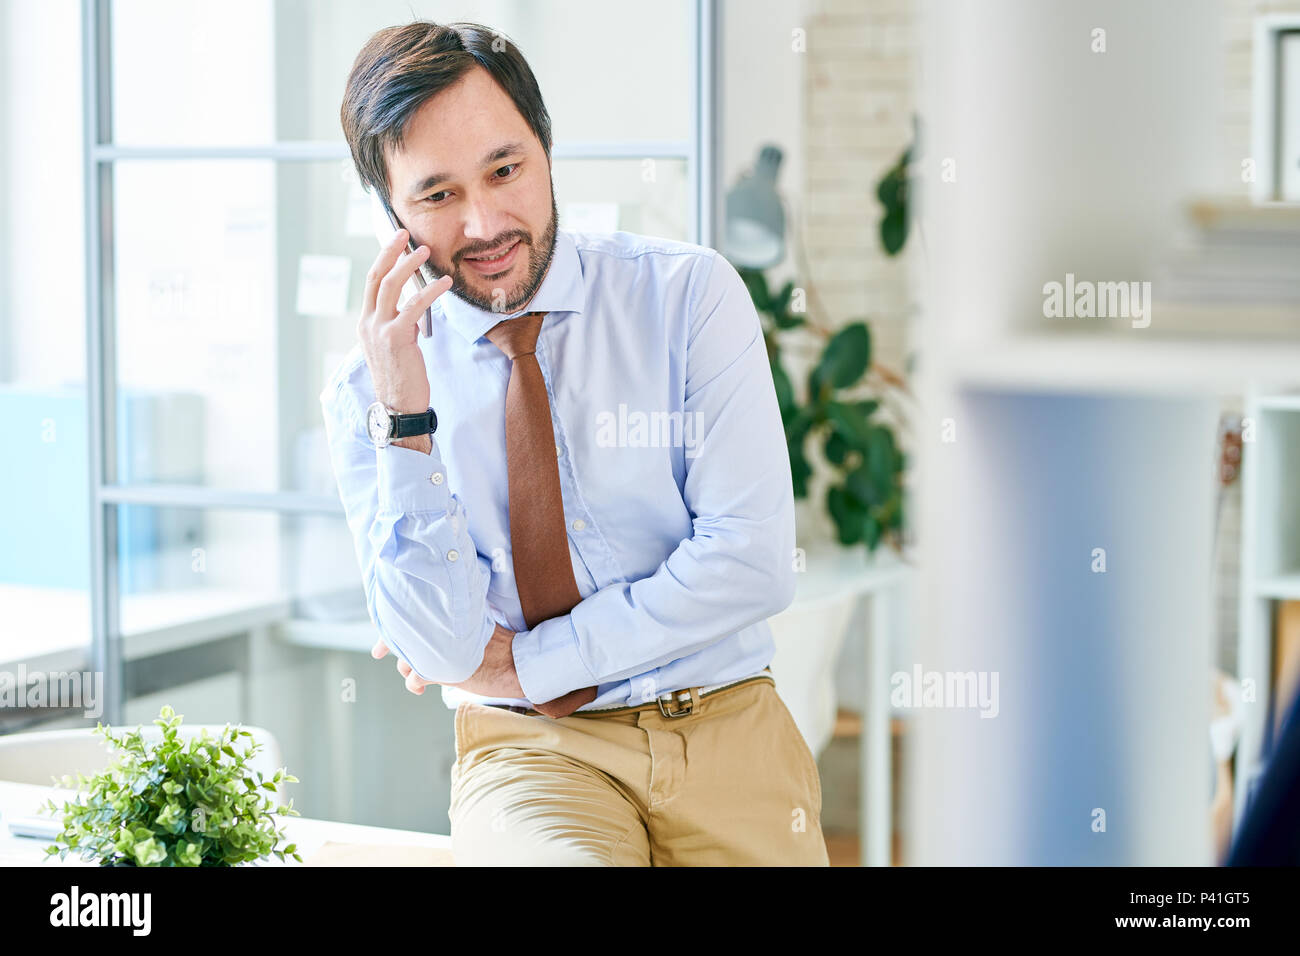 Content businessman having phone call - Stock Image